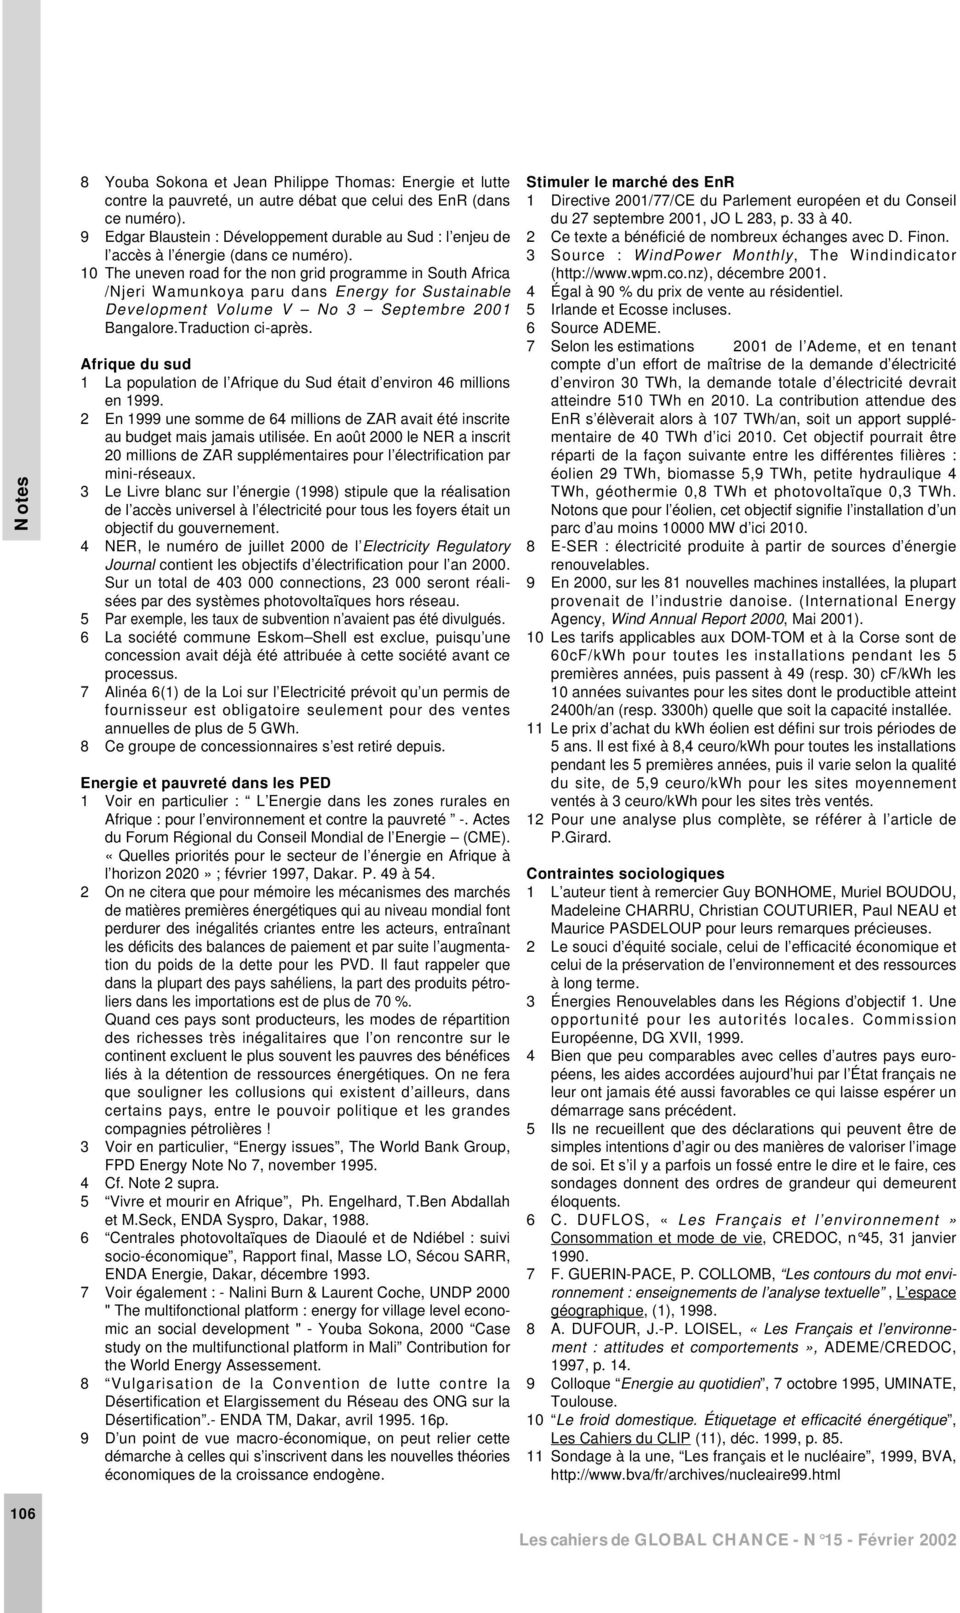 10 The uneven road for the non grid programme in South Africa /Njeri Wamunkoya paru dans Energy for Sustainable Development Volume V No 3 Septembre 2001 Bangalore.Traduction ci-après.